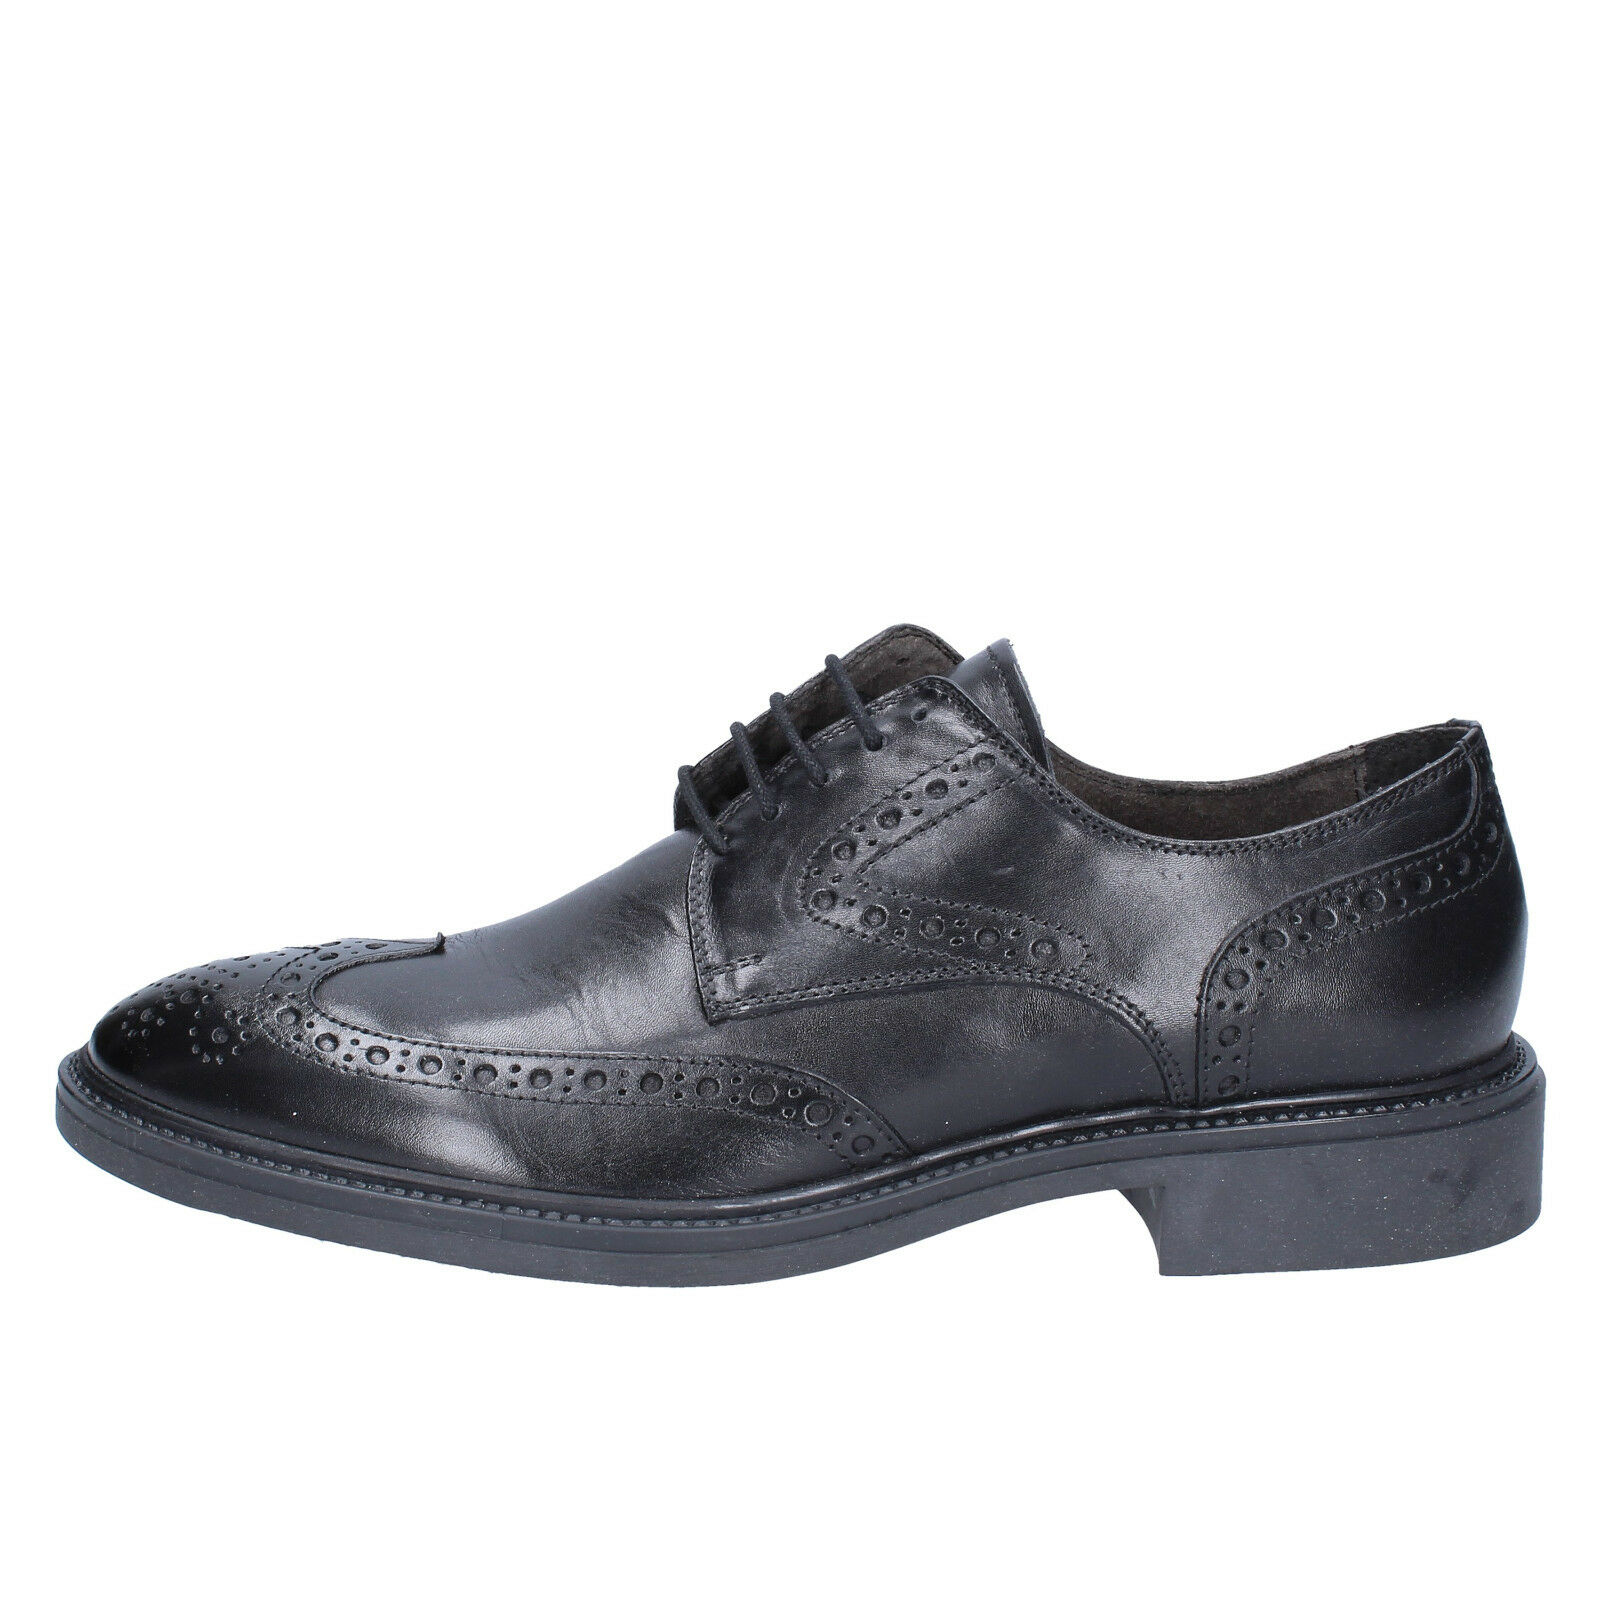 Mens shoes WILLY ADAMS 10 (EU 44) elegant black leather BX584-44